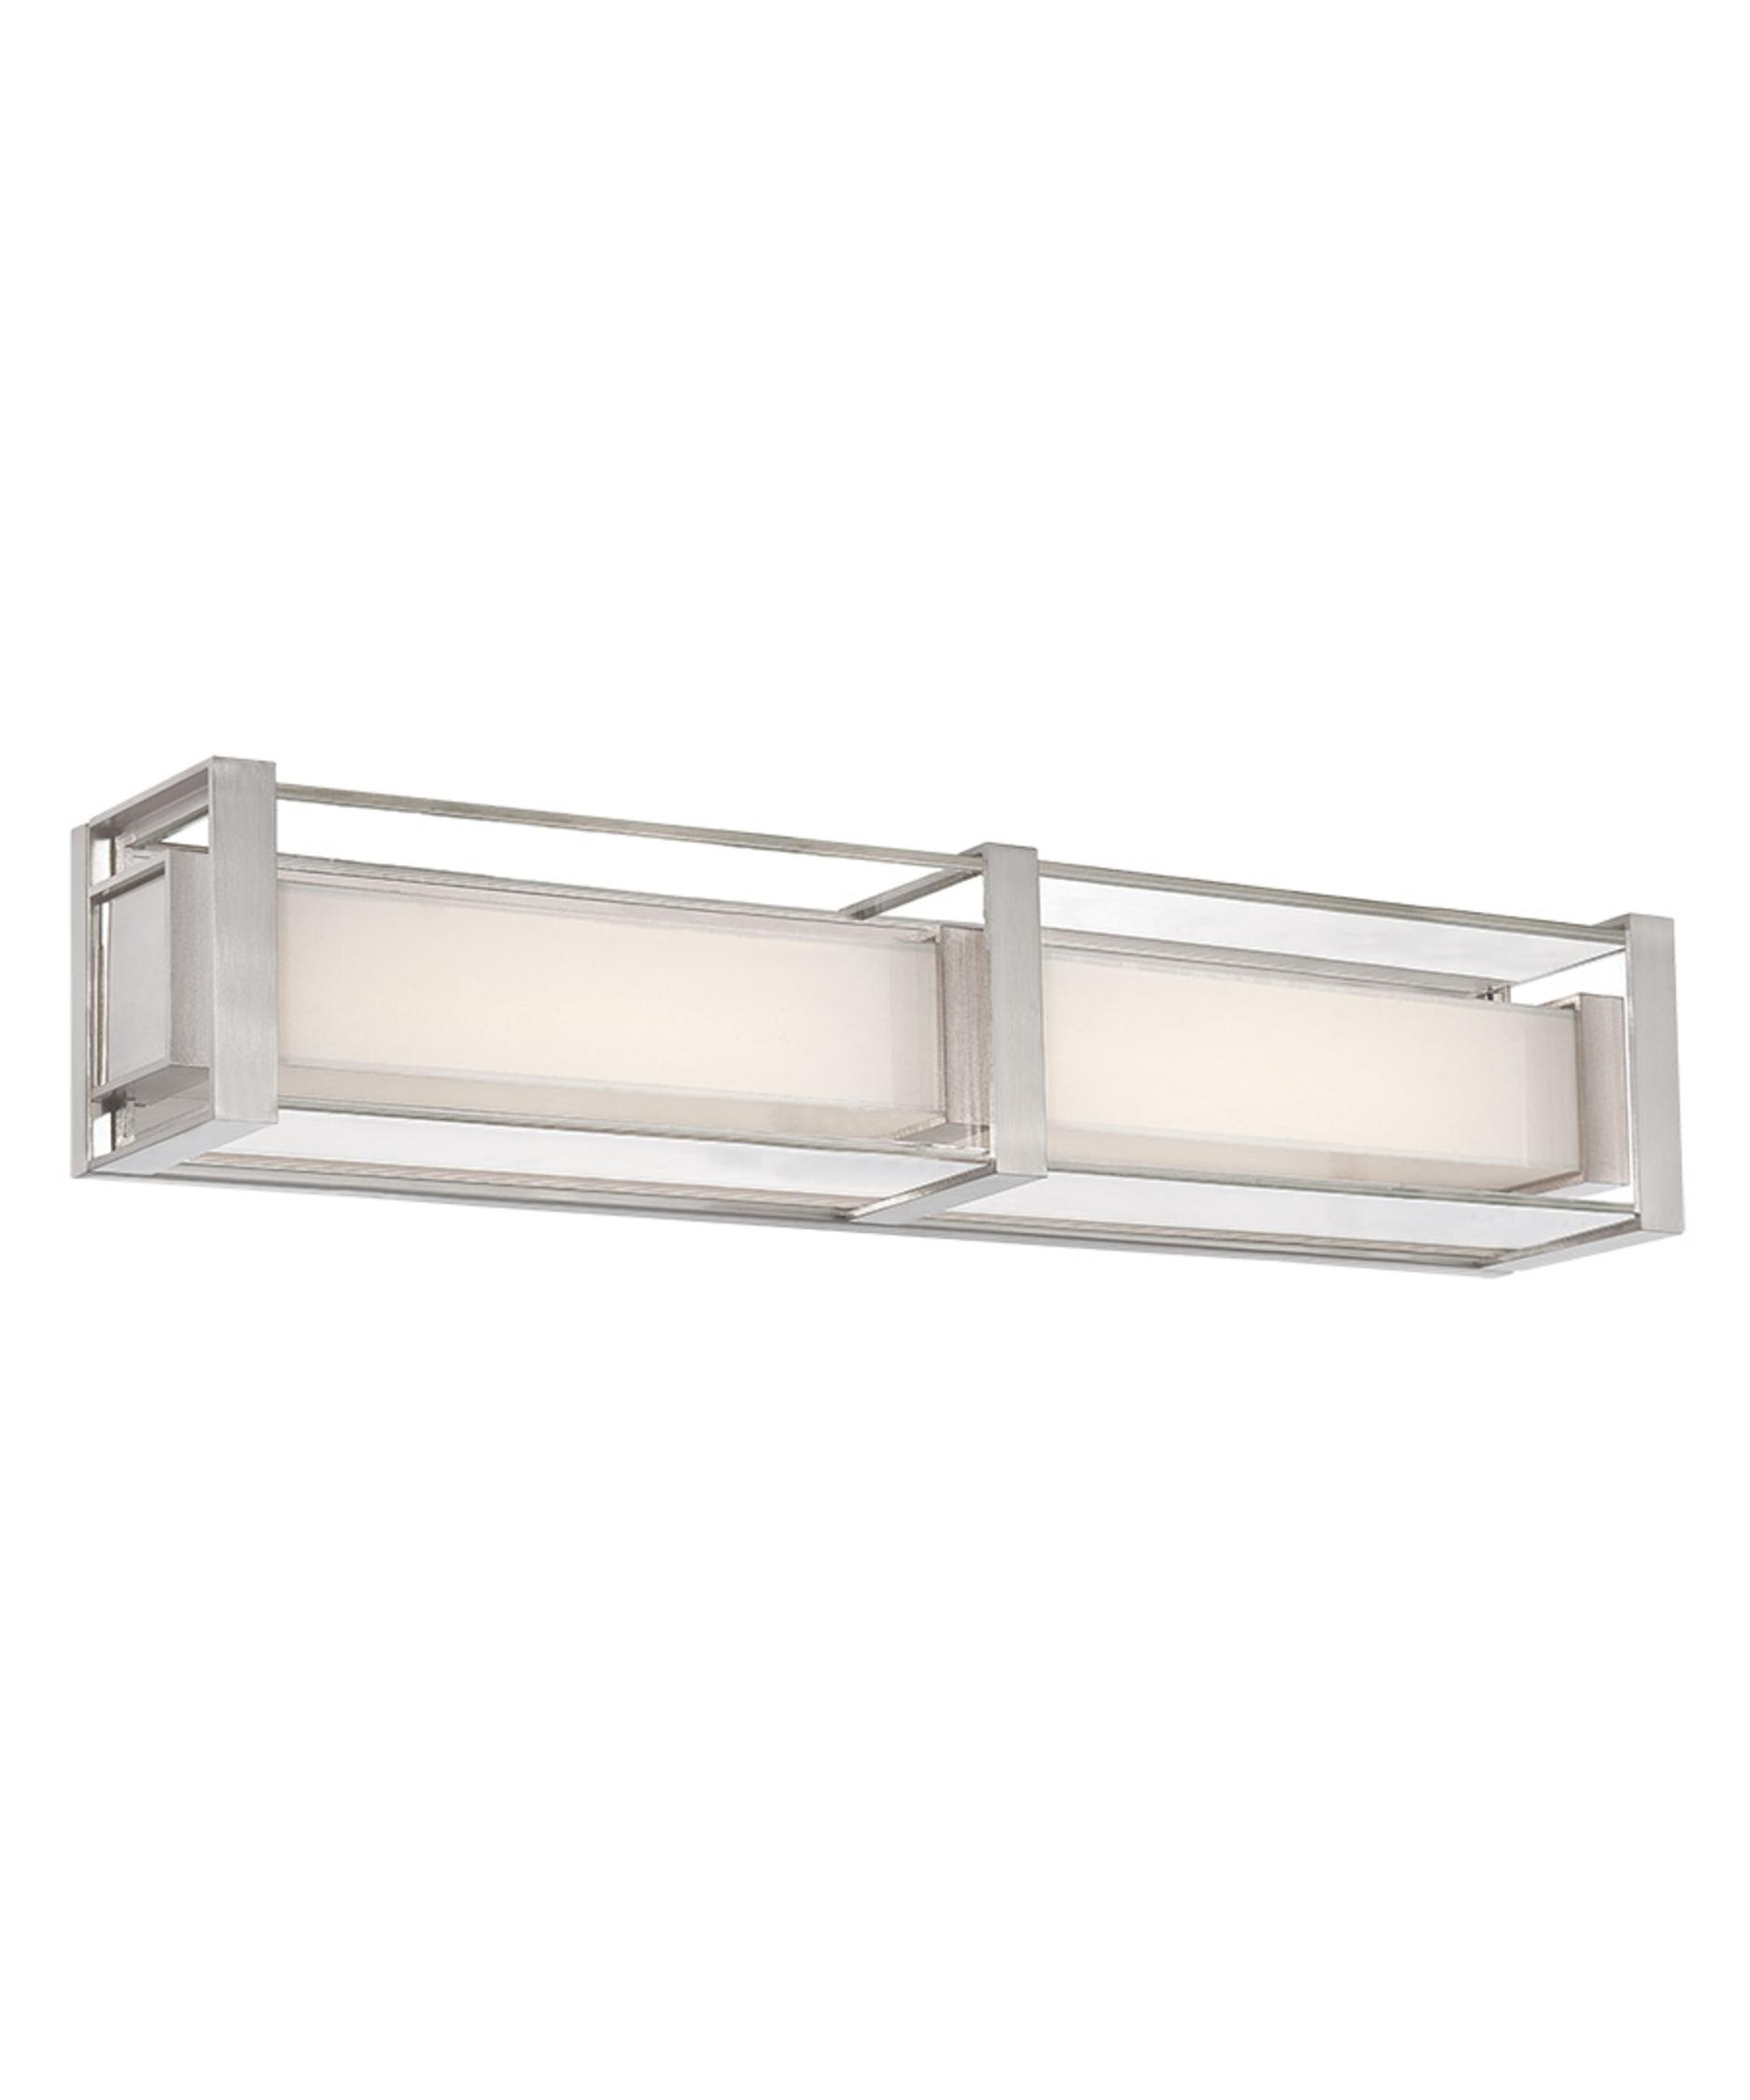 modern forms ws sheridan  inch wide bath vanity light  - shown in brushed nickel finish and white ceramic glass